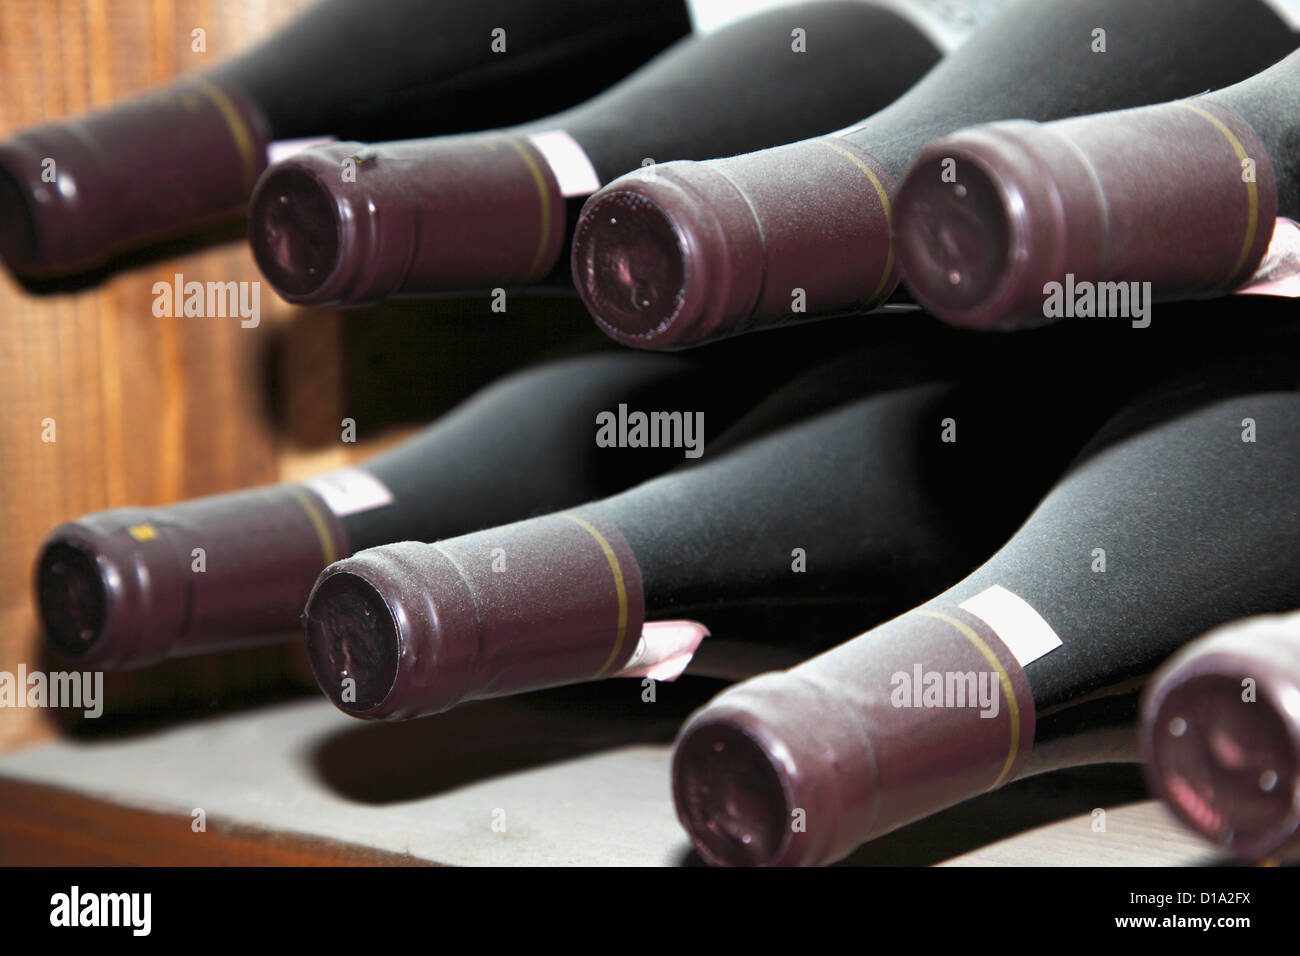 Wine bottles in a wine cellar, shot close up - Stock Image